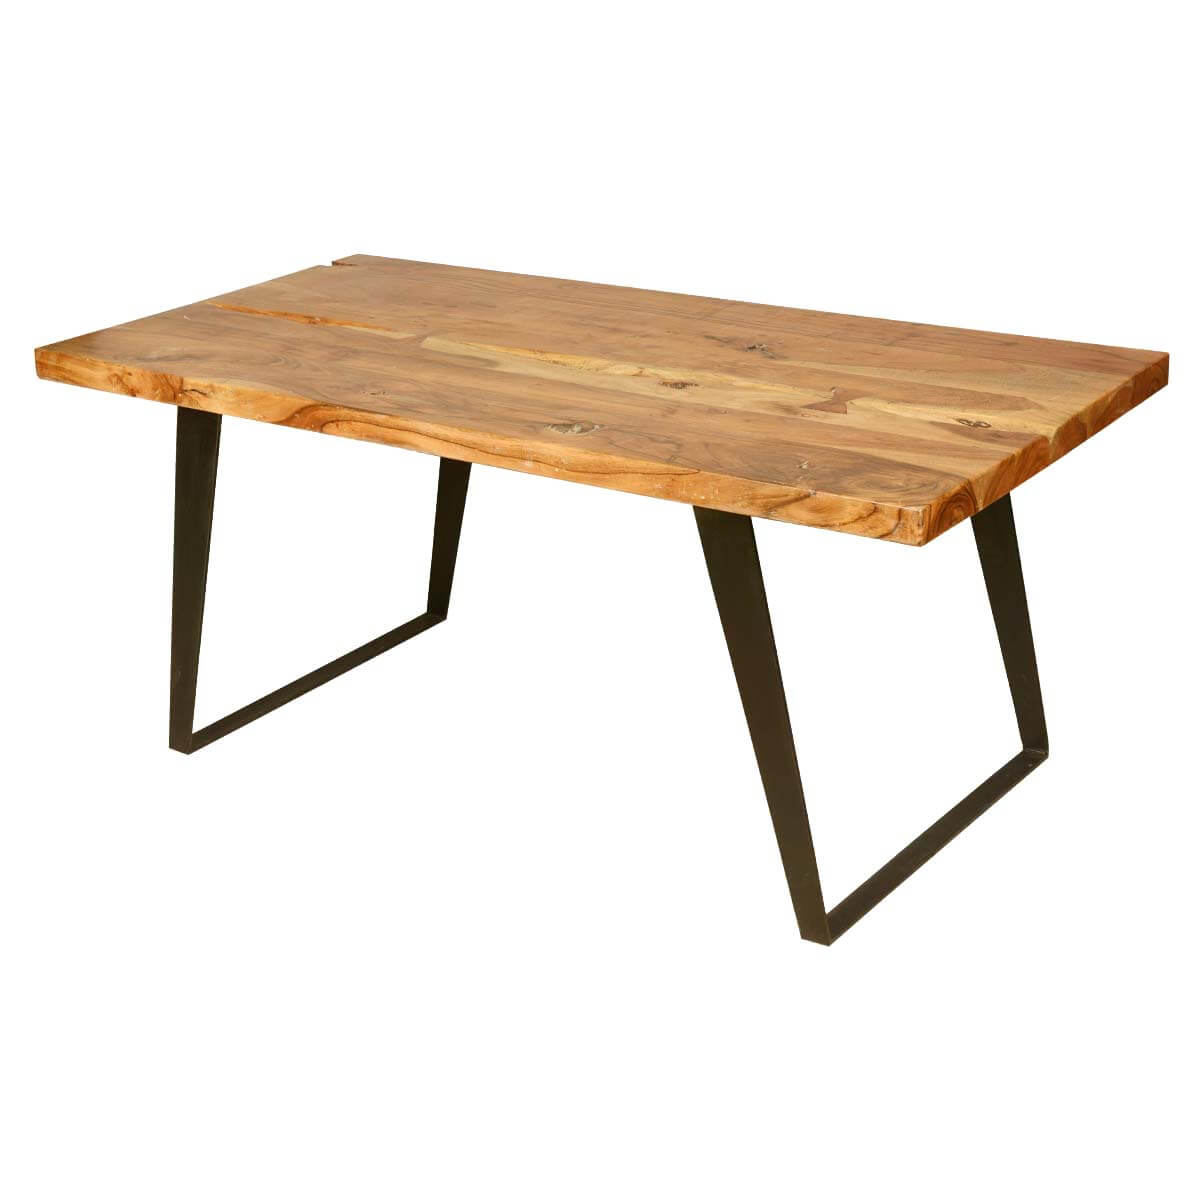 Hankin modern rustic solid wood industrial style dining table Rustic wood dining table